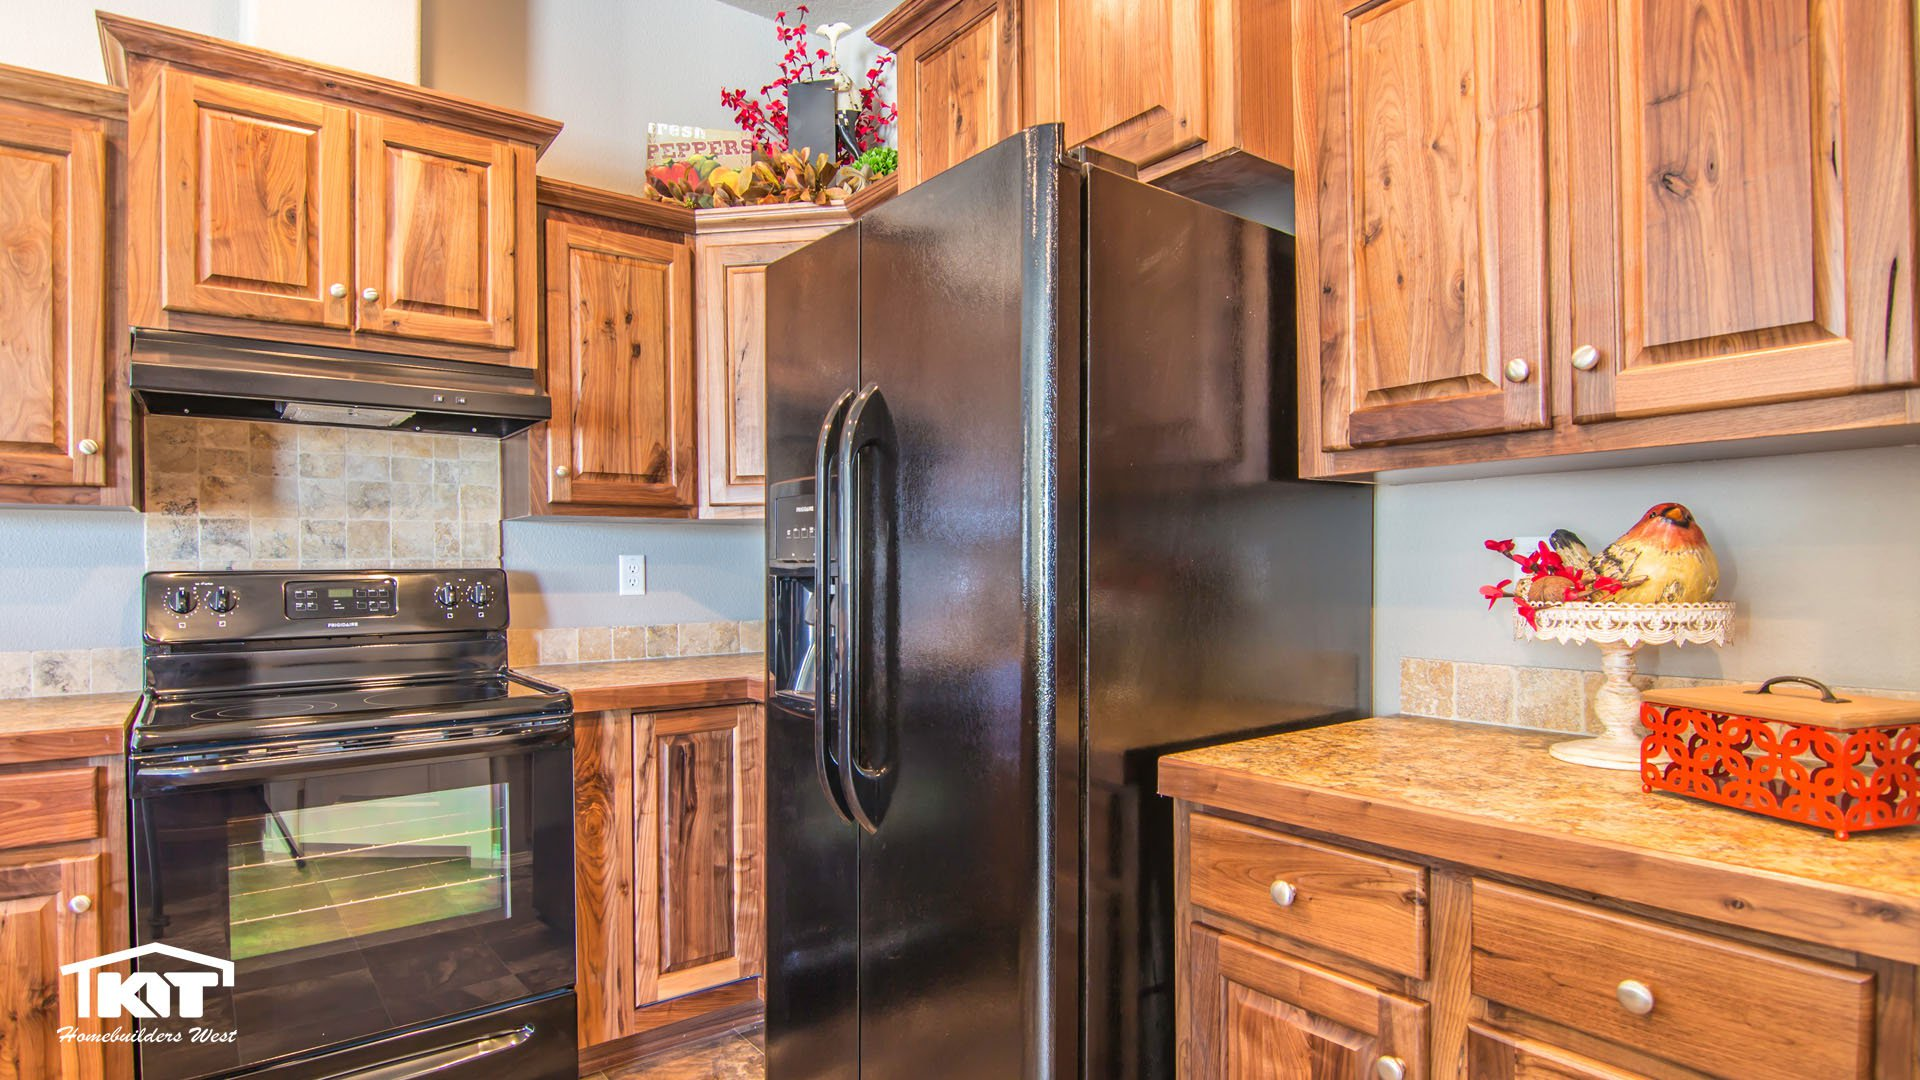 Peter 39 s homes in post falls id manufactured home dealer for Kitchen in the canyon